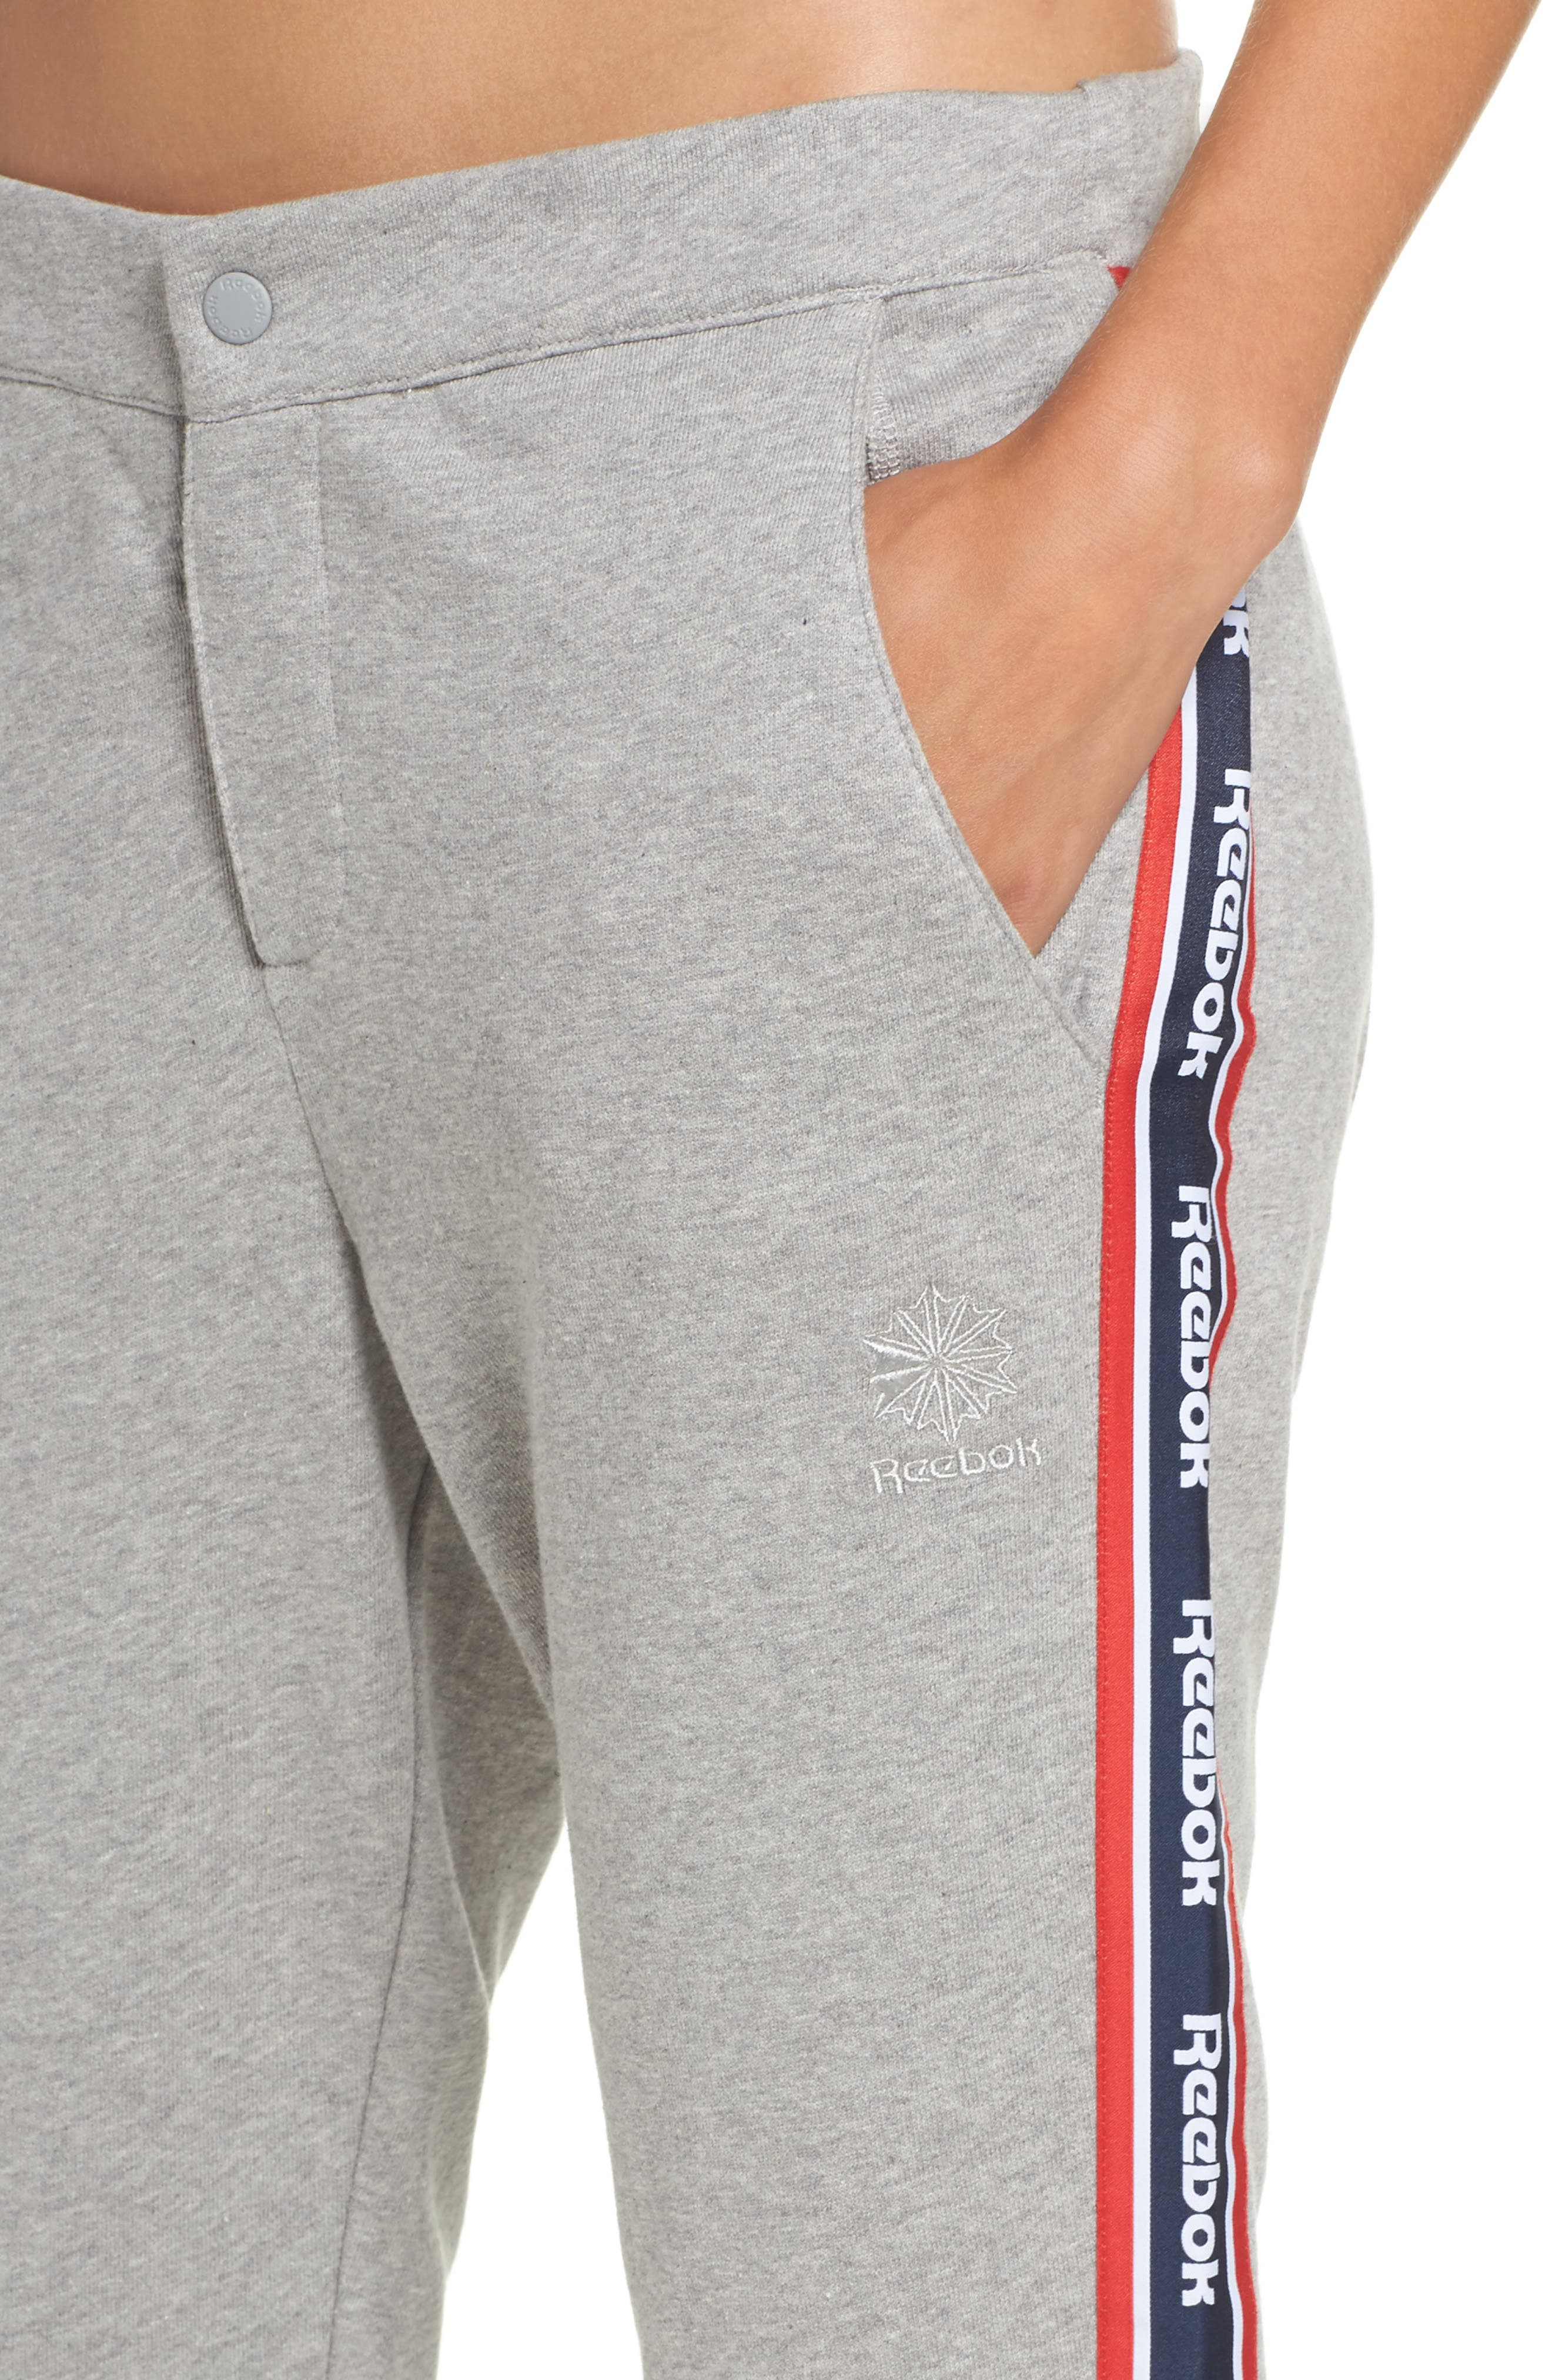 French Terry Pants,                             Alternate thumbnail 4, color,                             Medium Grey Heather